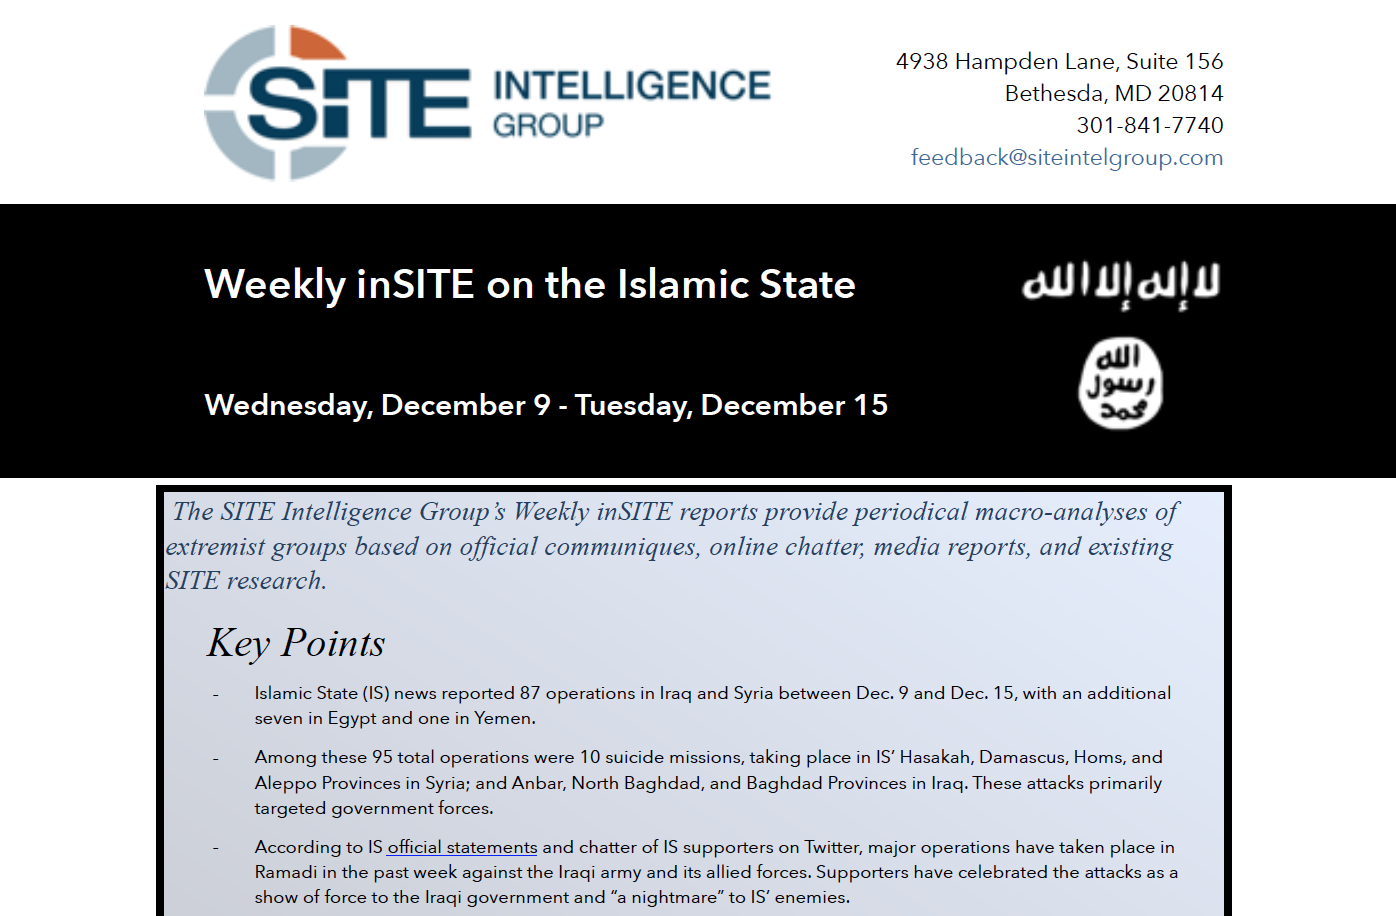 Weekly inSITE on ISIS, Dec 9 - Dec 15